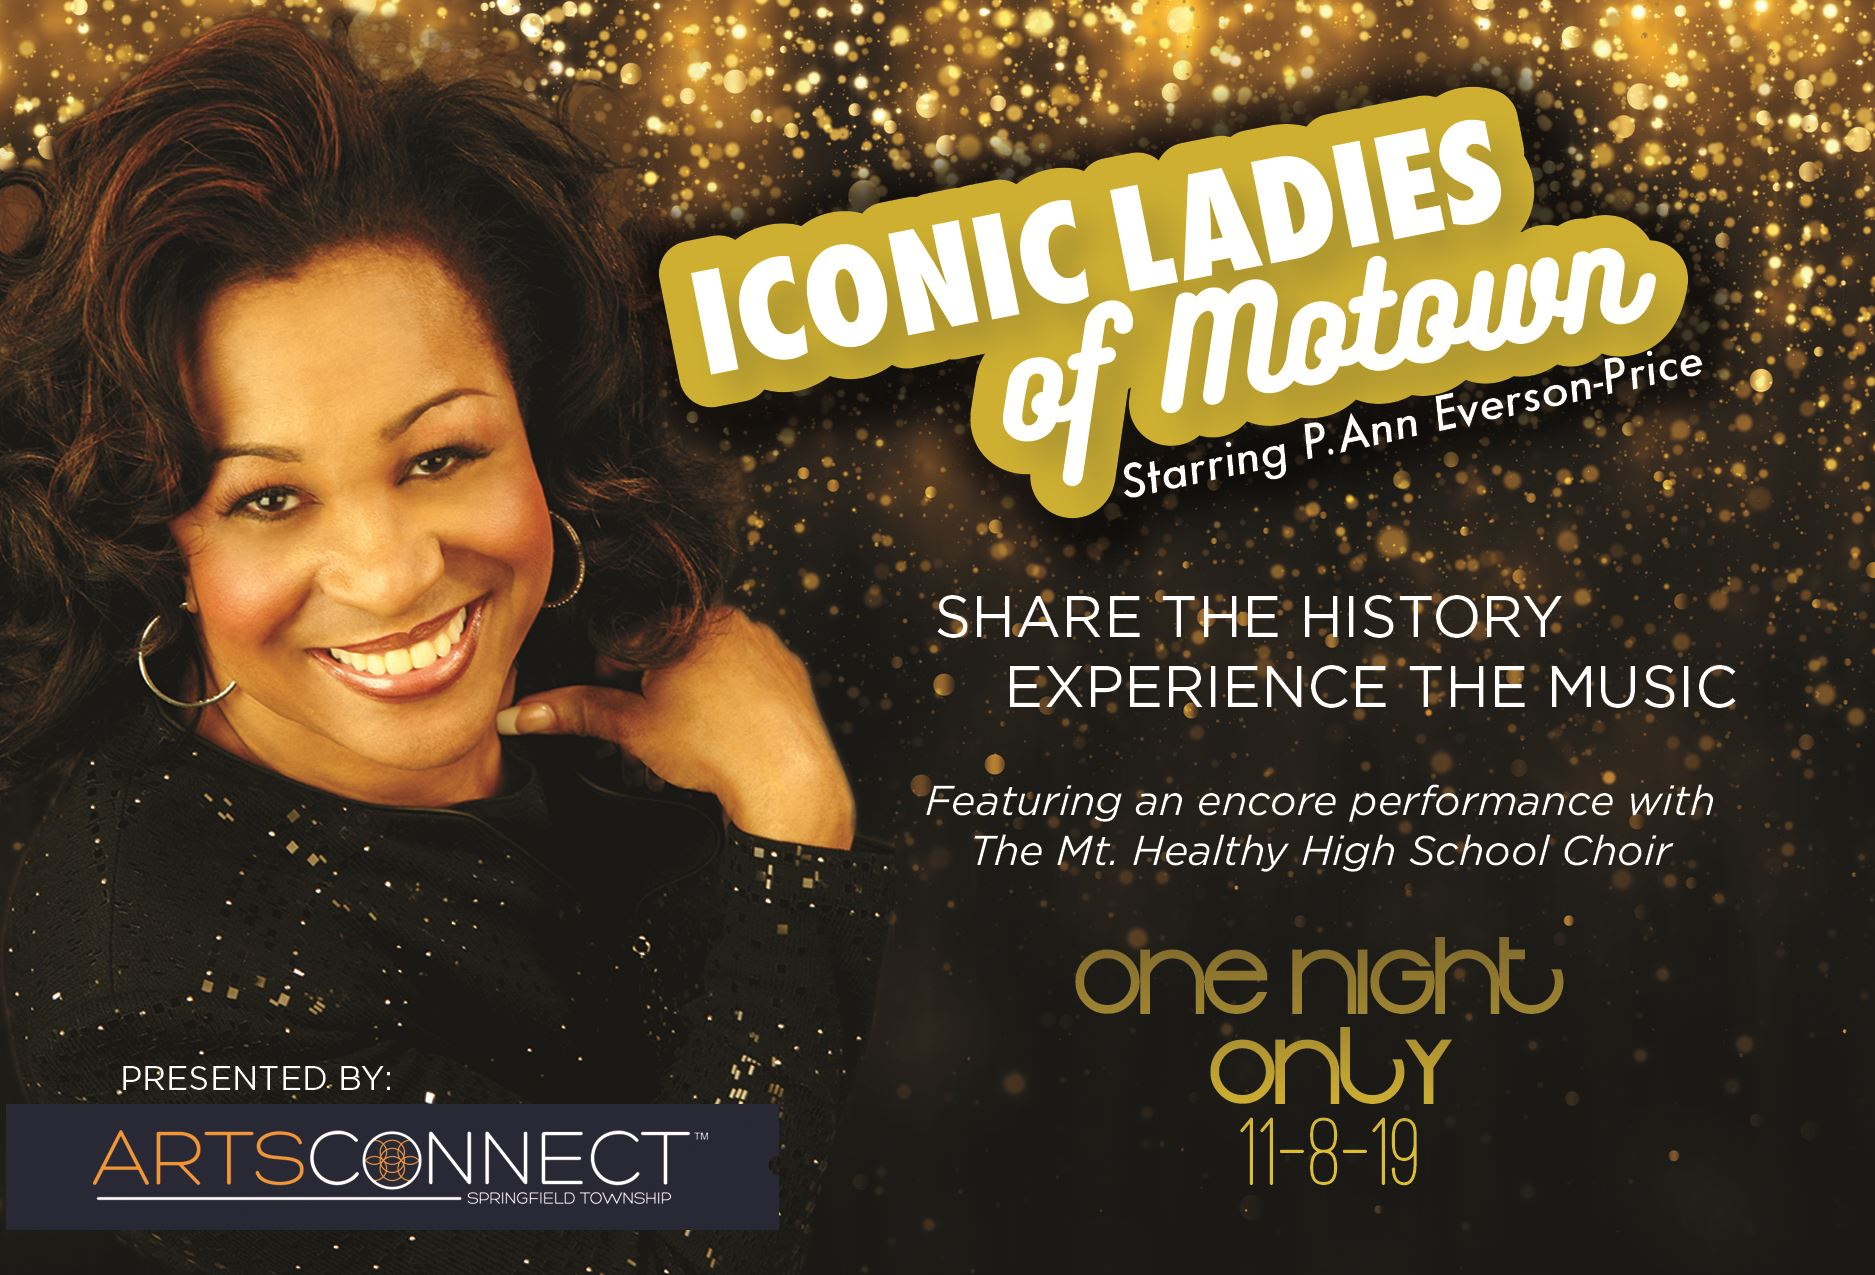 Iconic Ladies of Motown - web image